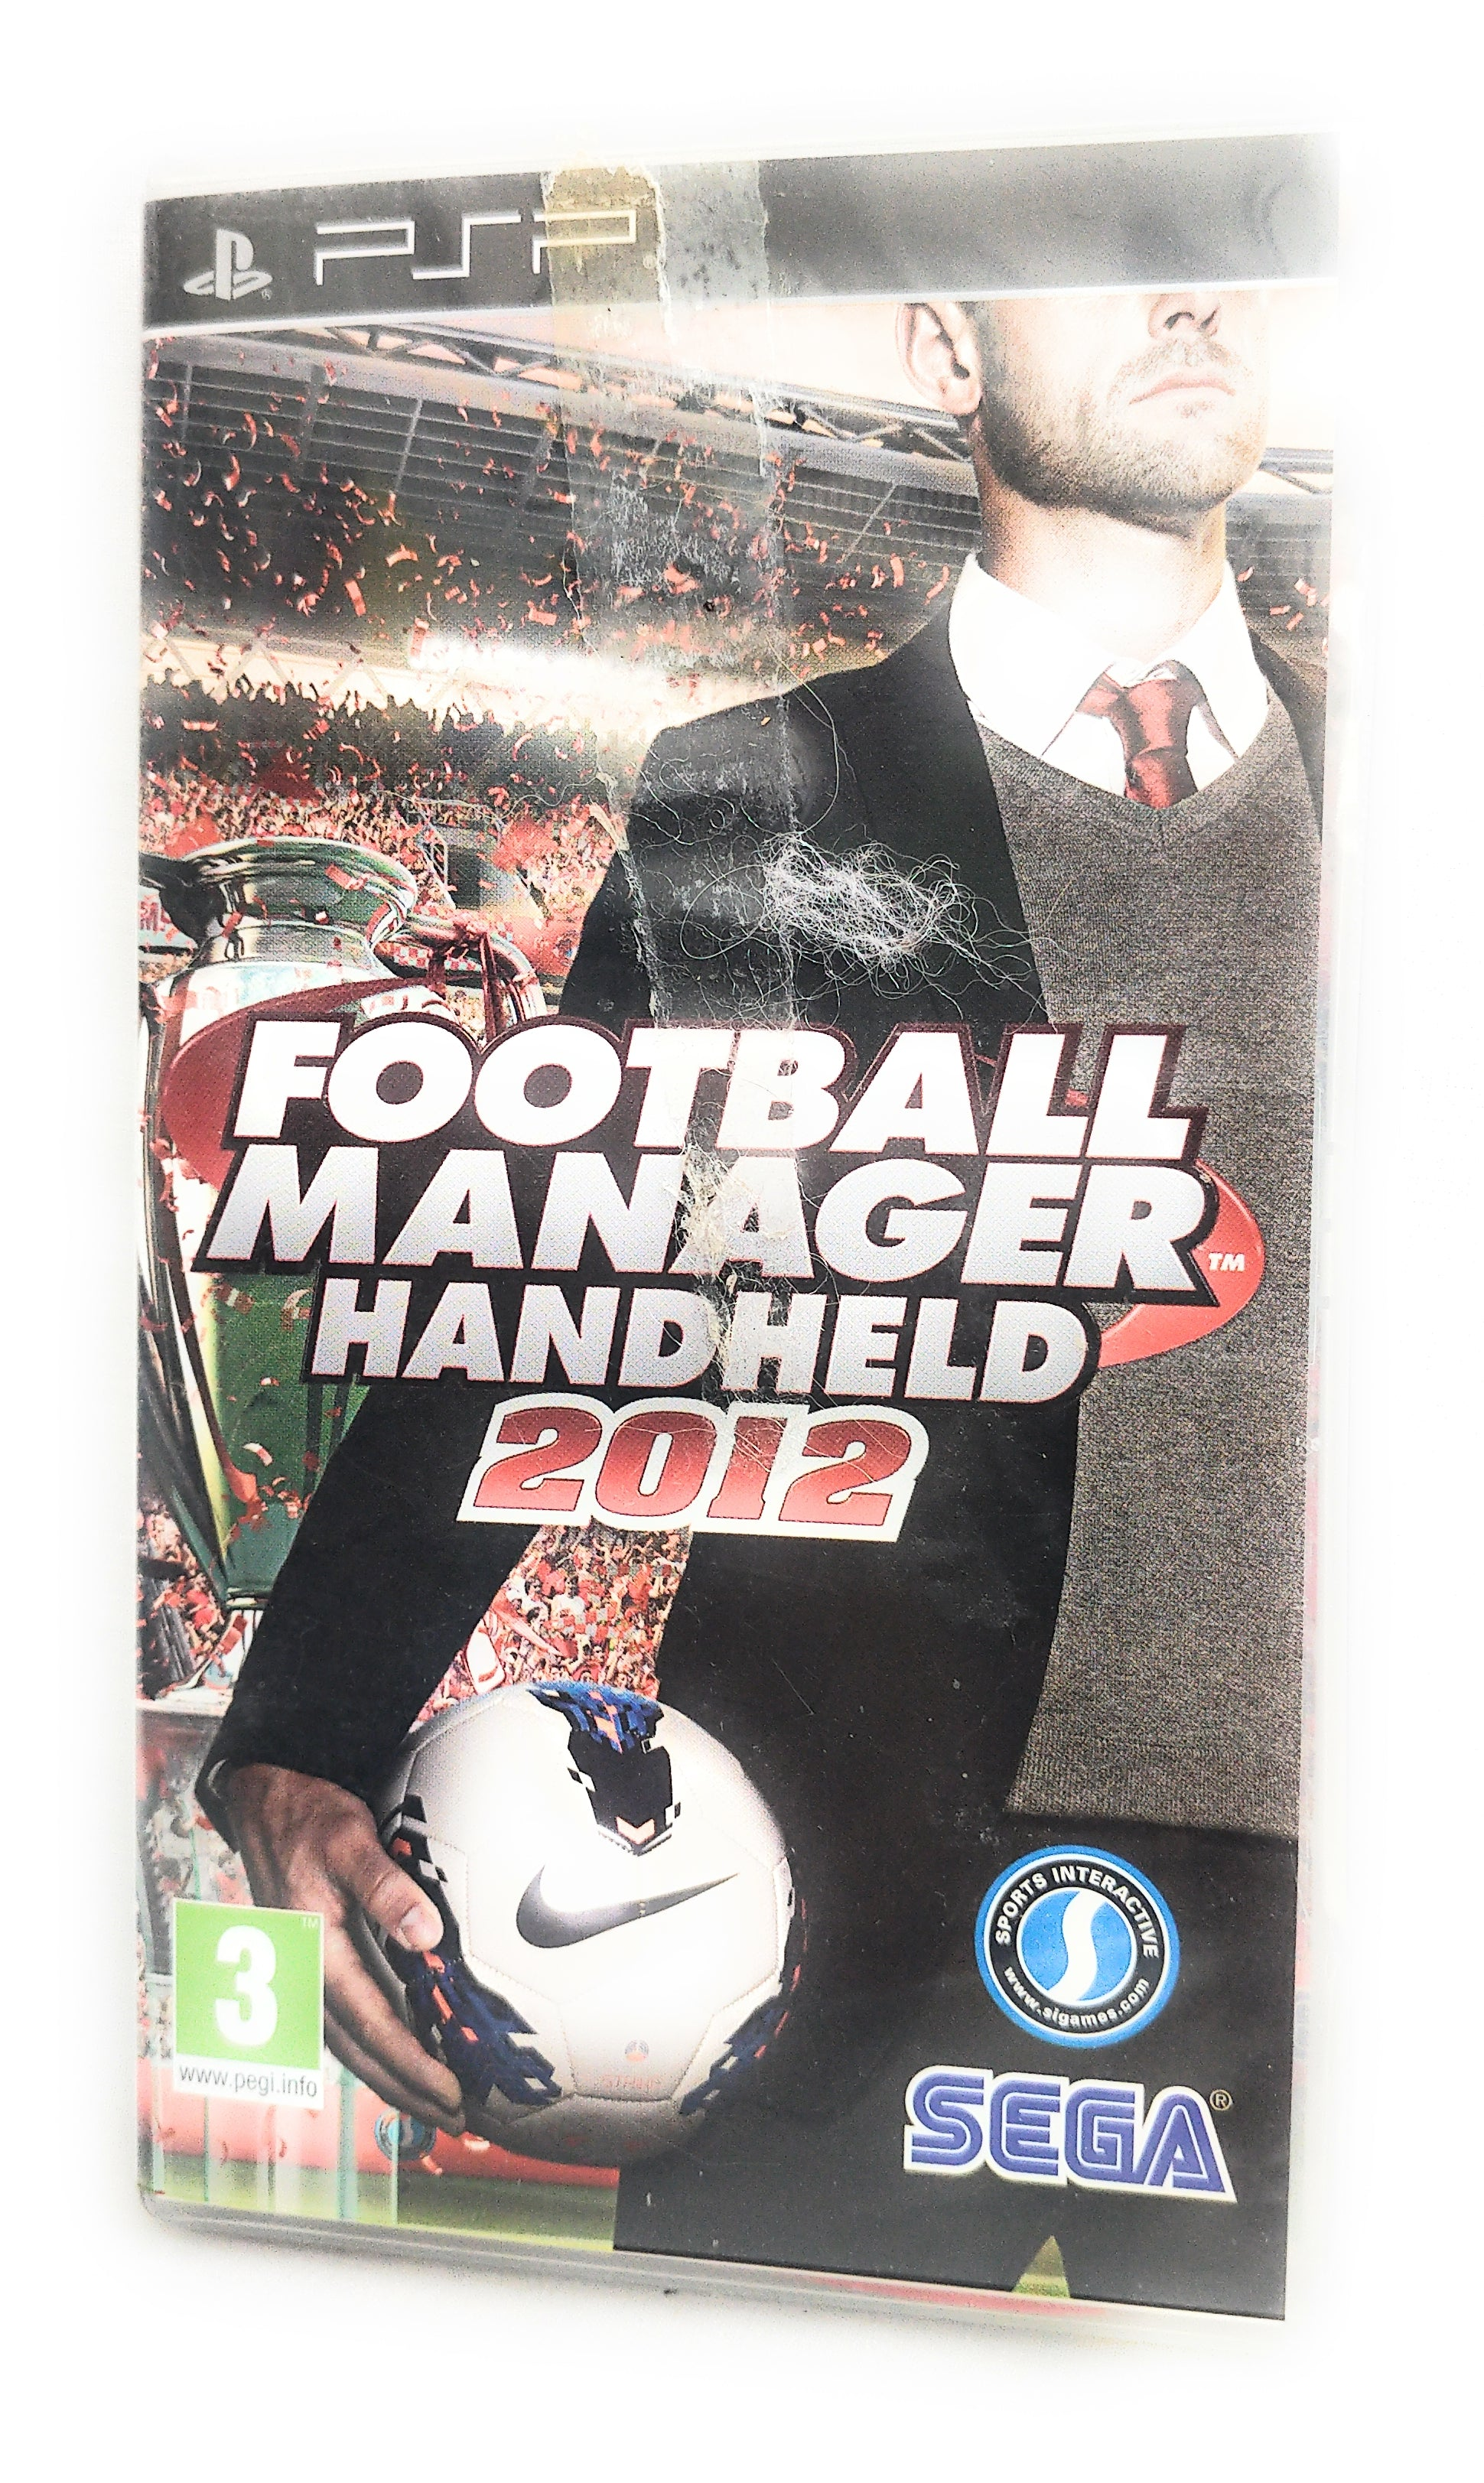 Football Manager Handheld 2012 - Sony PSP - UMD - PAL - Manual